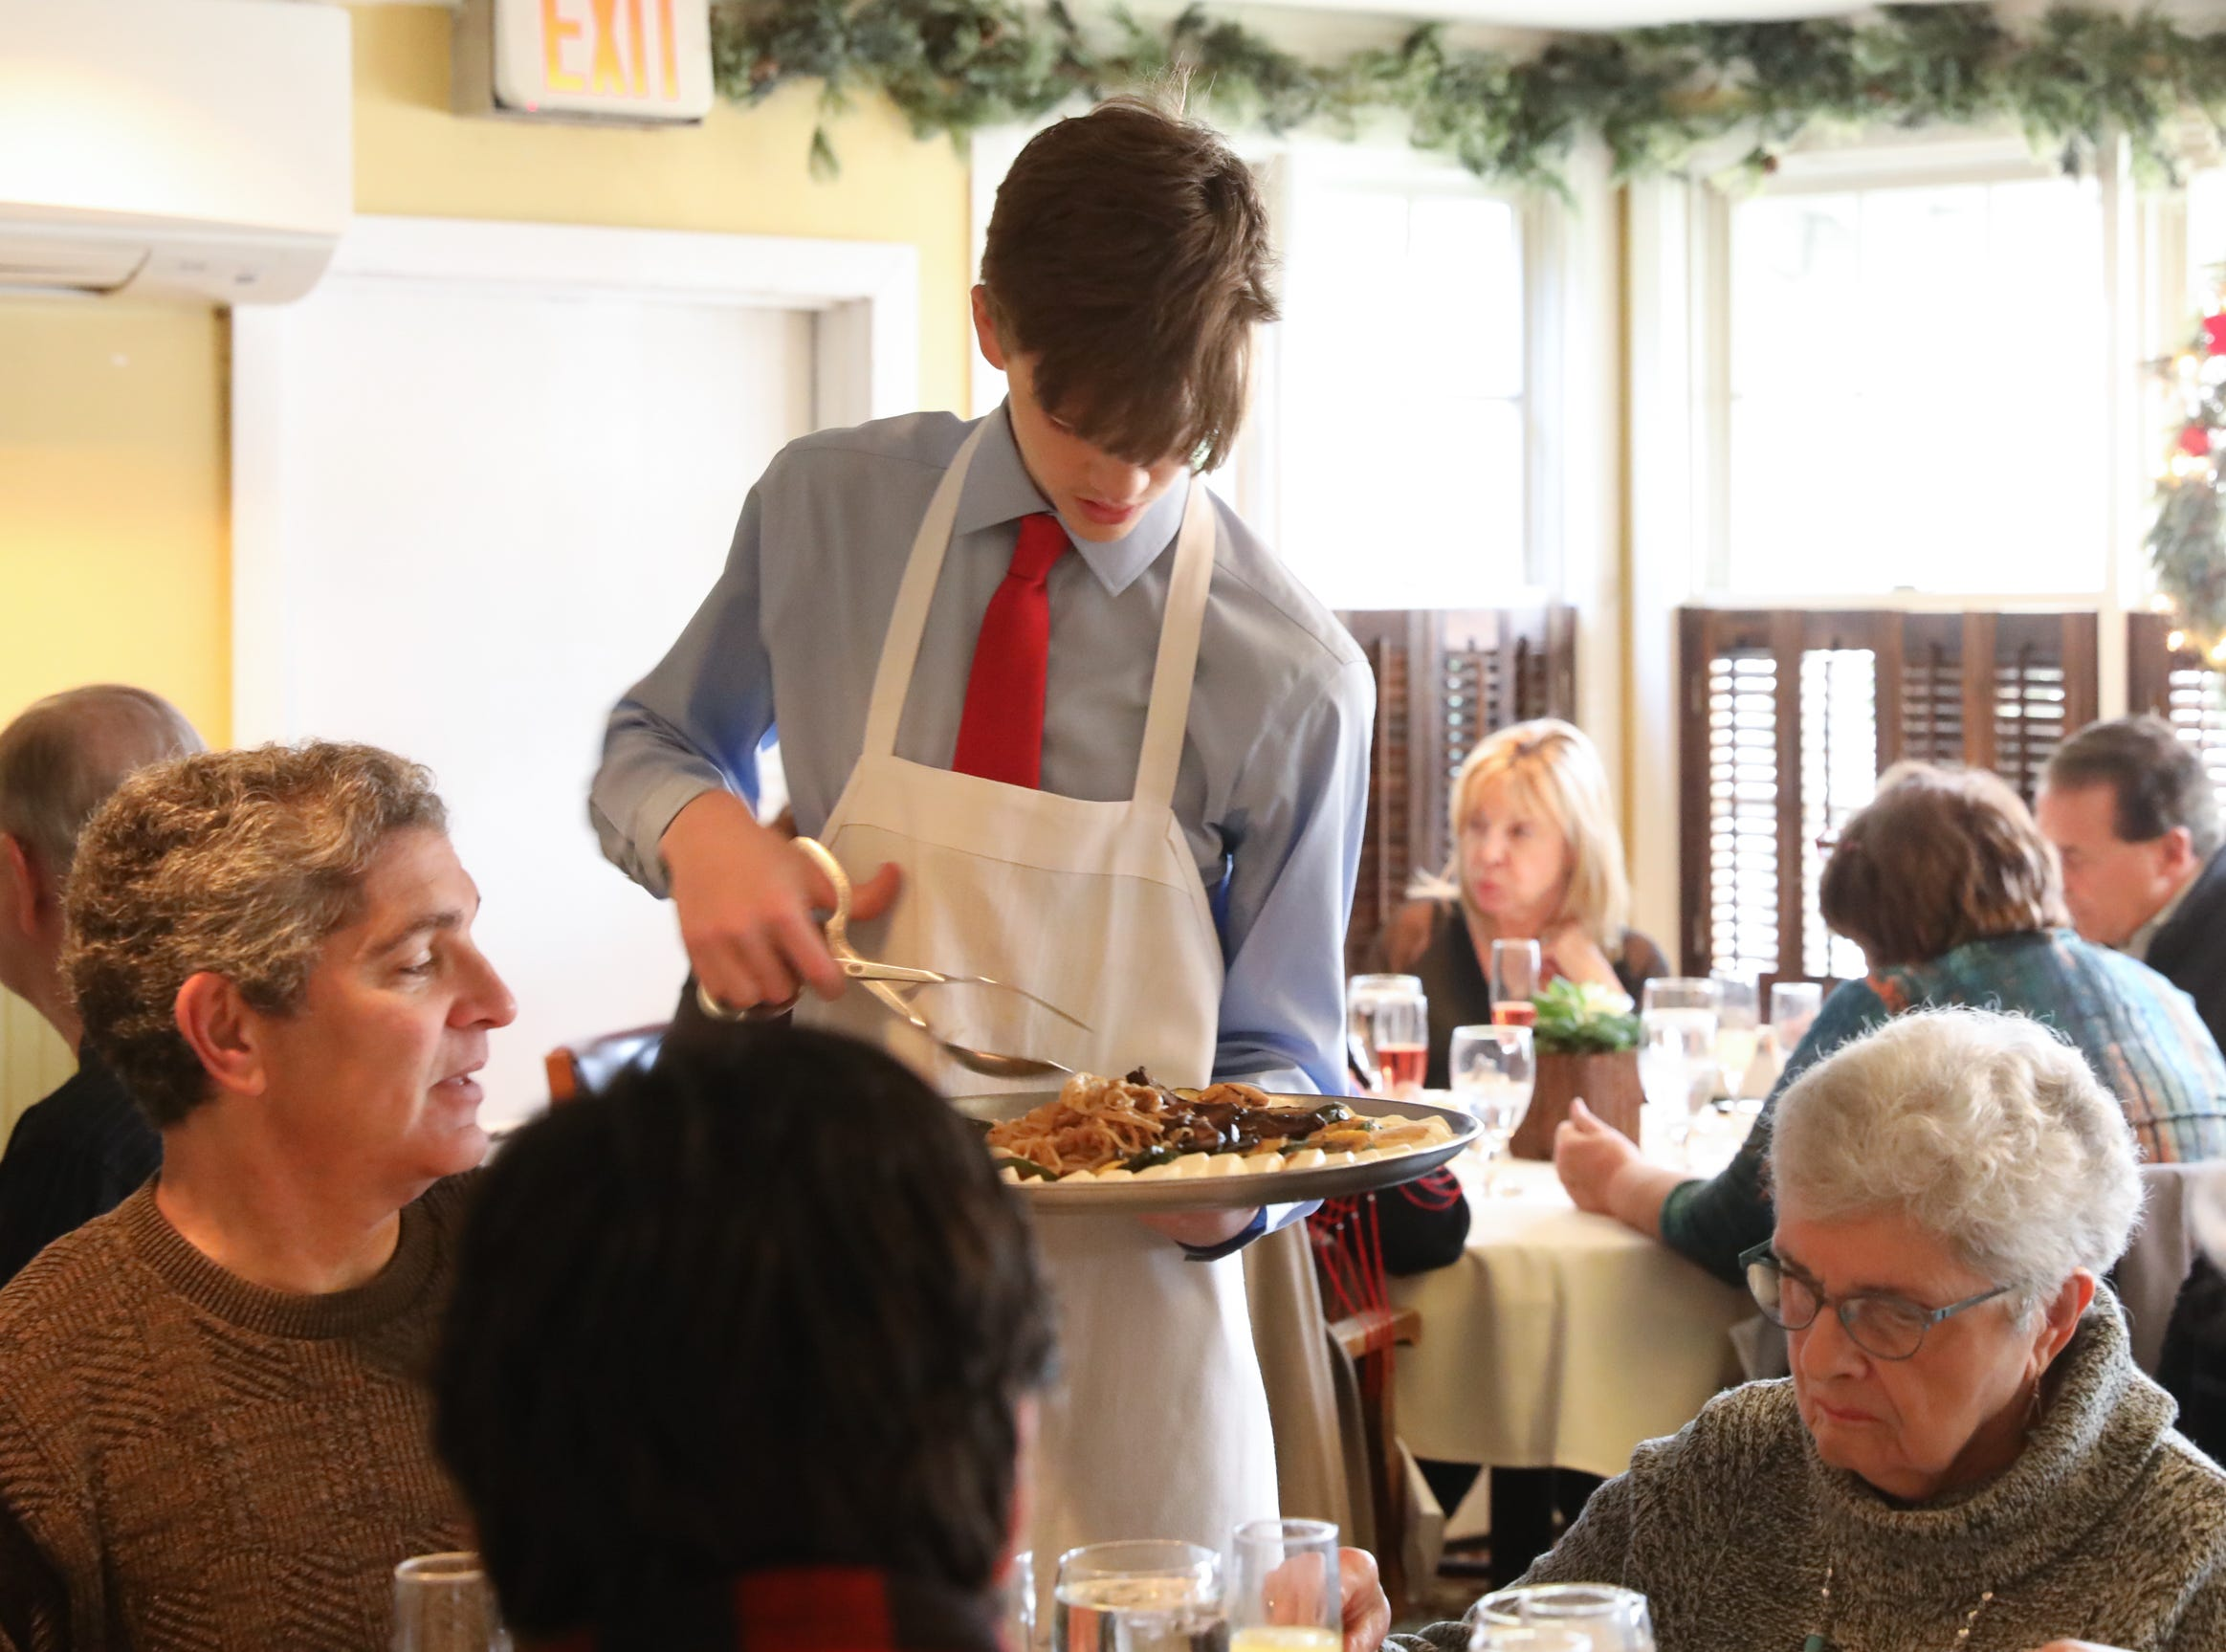 A server serves Grilled Vegetables table side during Sunday brunch at Restaurant X in Congers on Sunday, January 6, 2019.